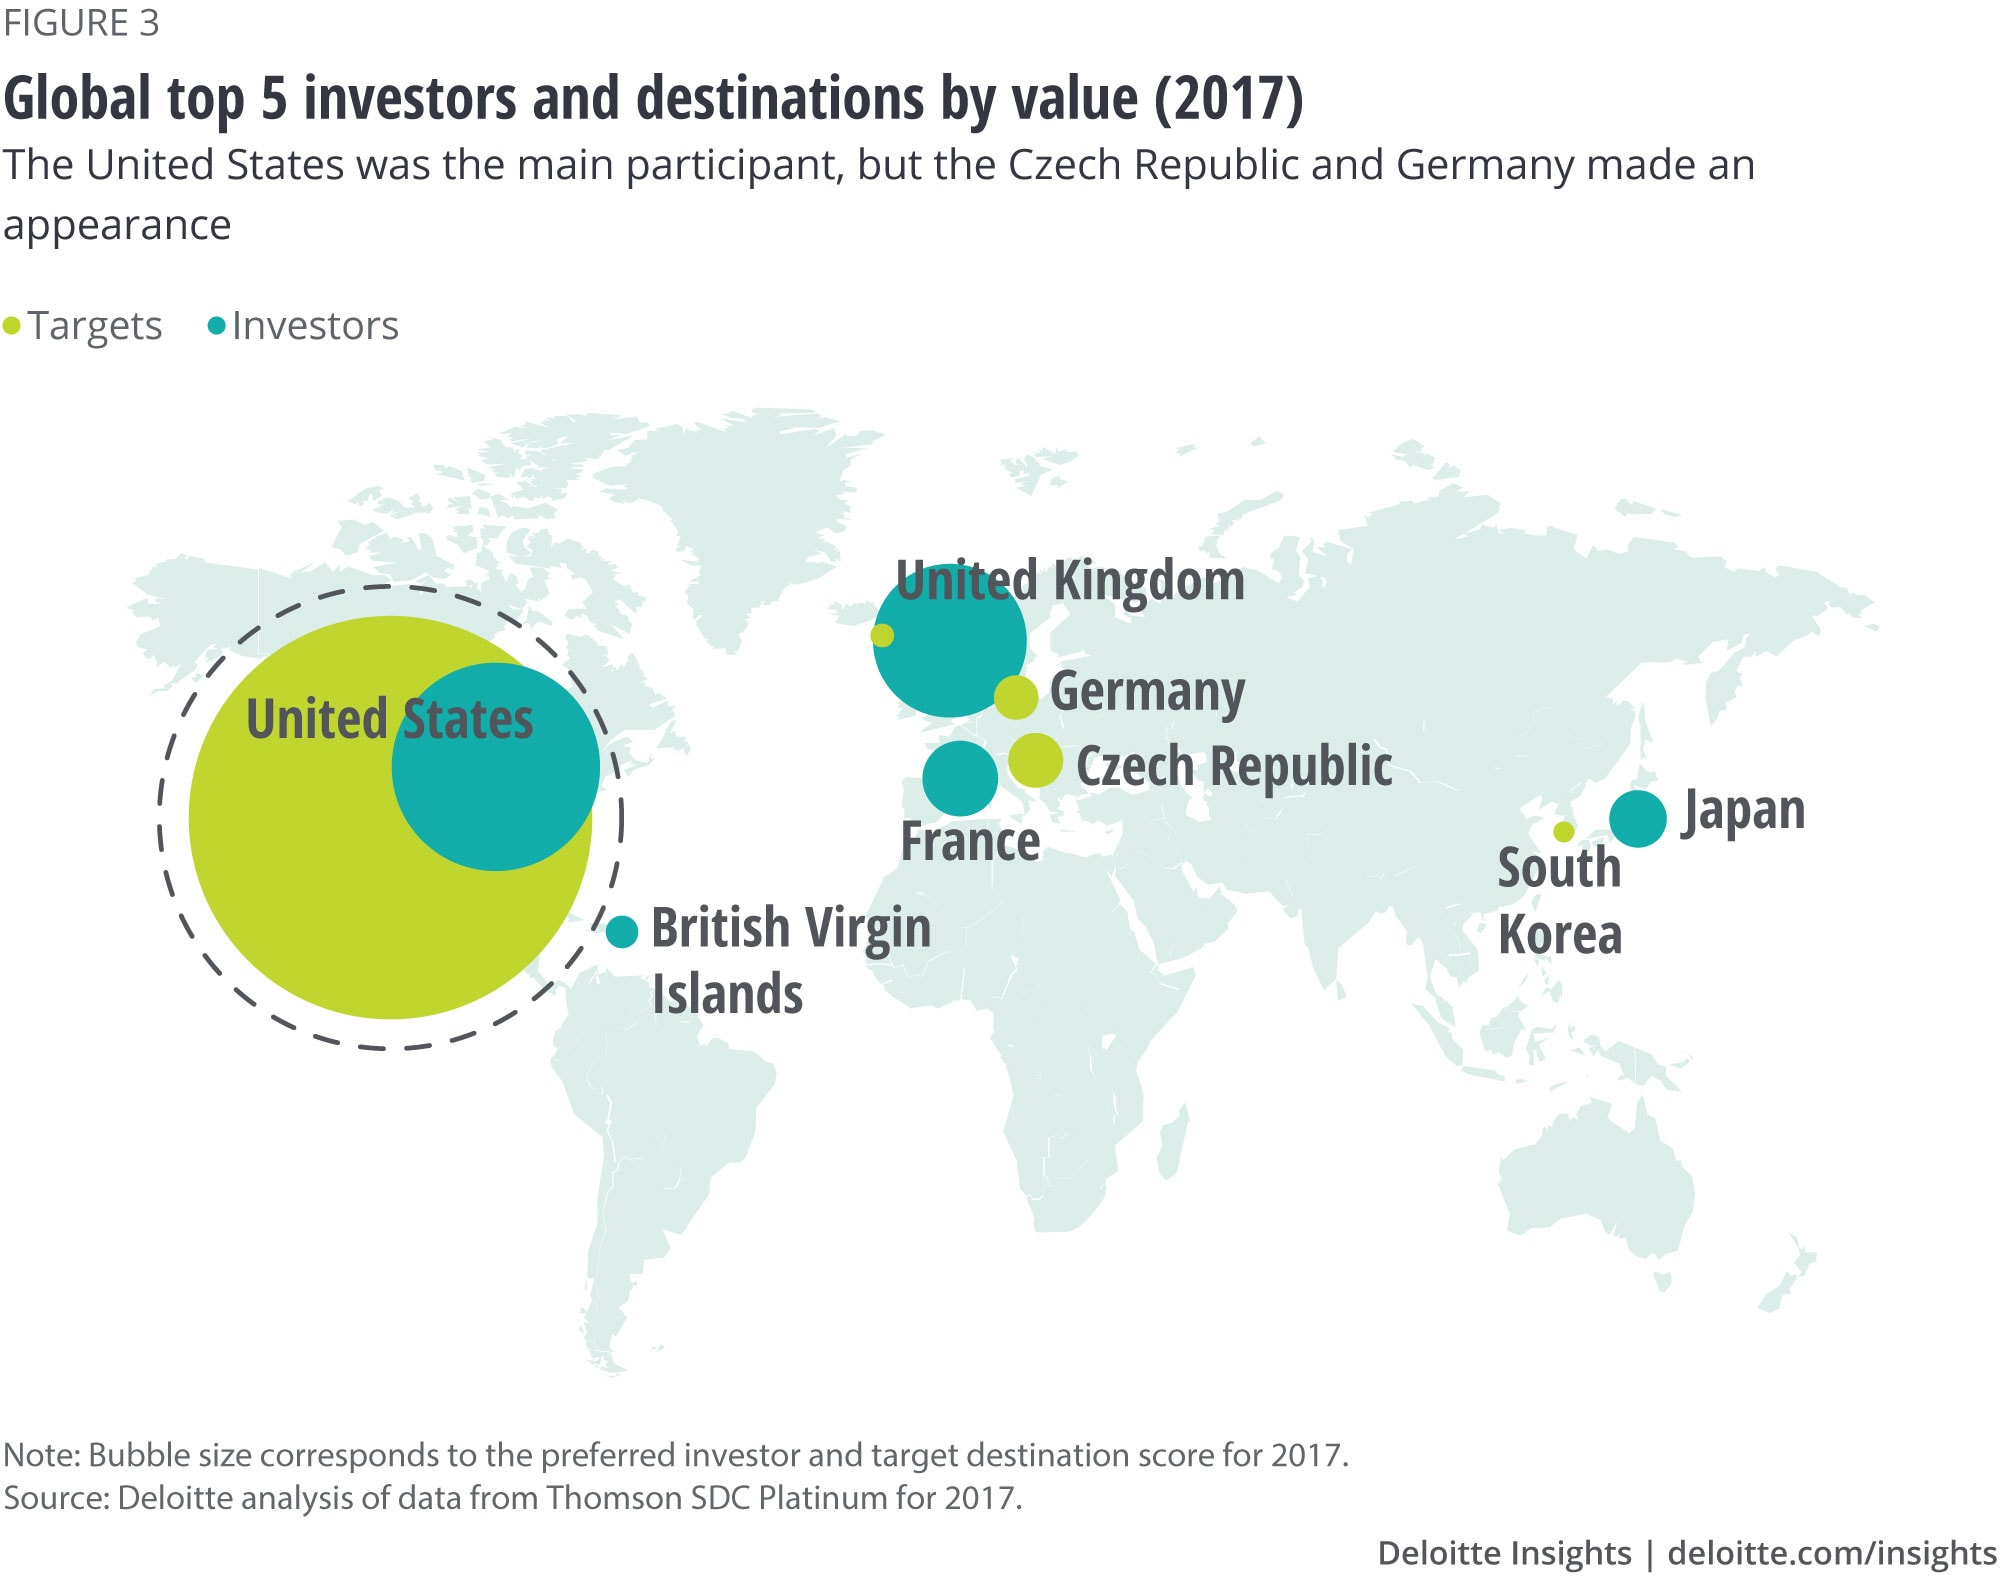 Global top 5 investors and destinations by value (2017): The United States was the main participant, but the Czech Republic and Germany made an appearance